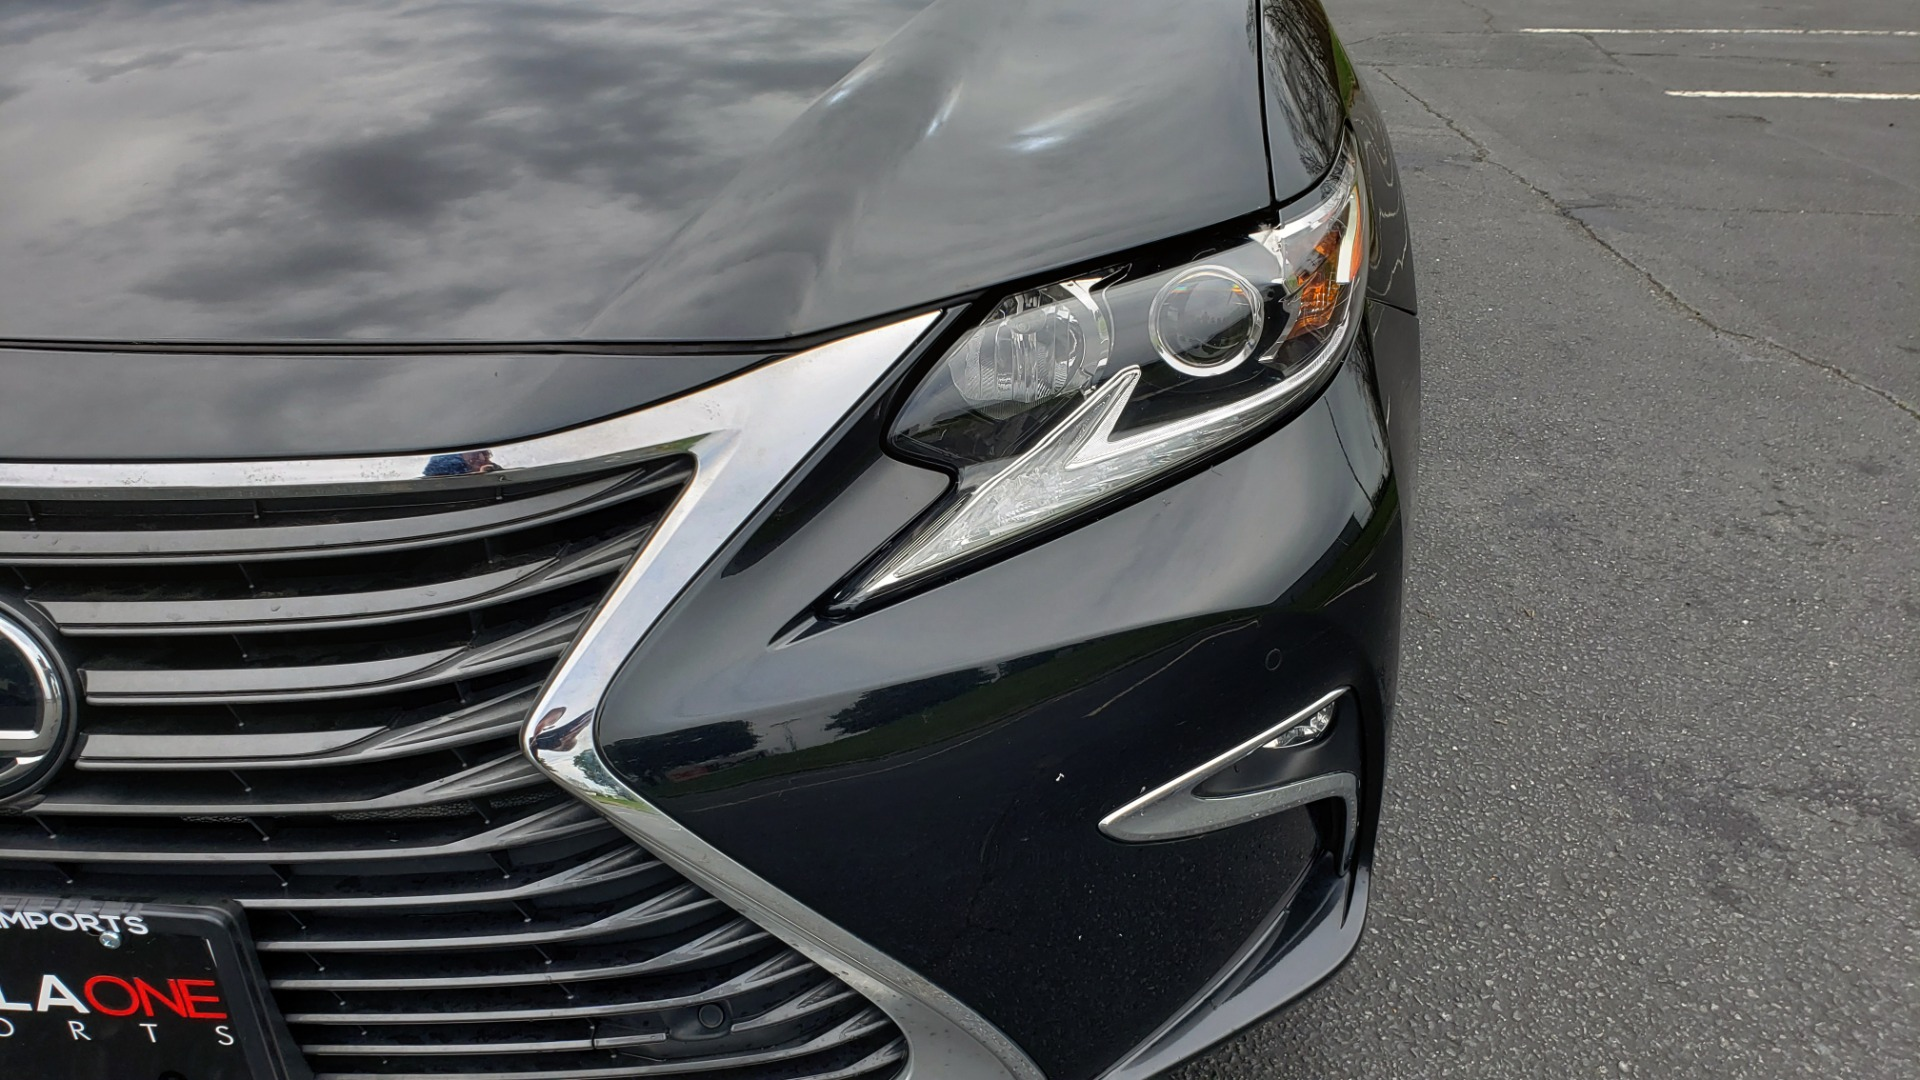 Used 2017 Lexus ES 350 PREMIUM / SUNROOF / PARK ASST / BSM / VENT SEATS / REARVIEW for sale Sold at Formula Imports in Charlotte NC 28227 24